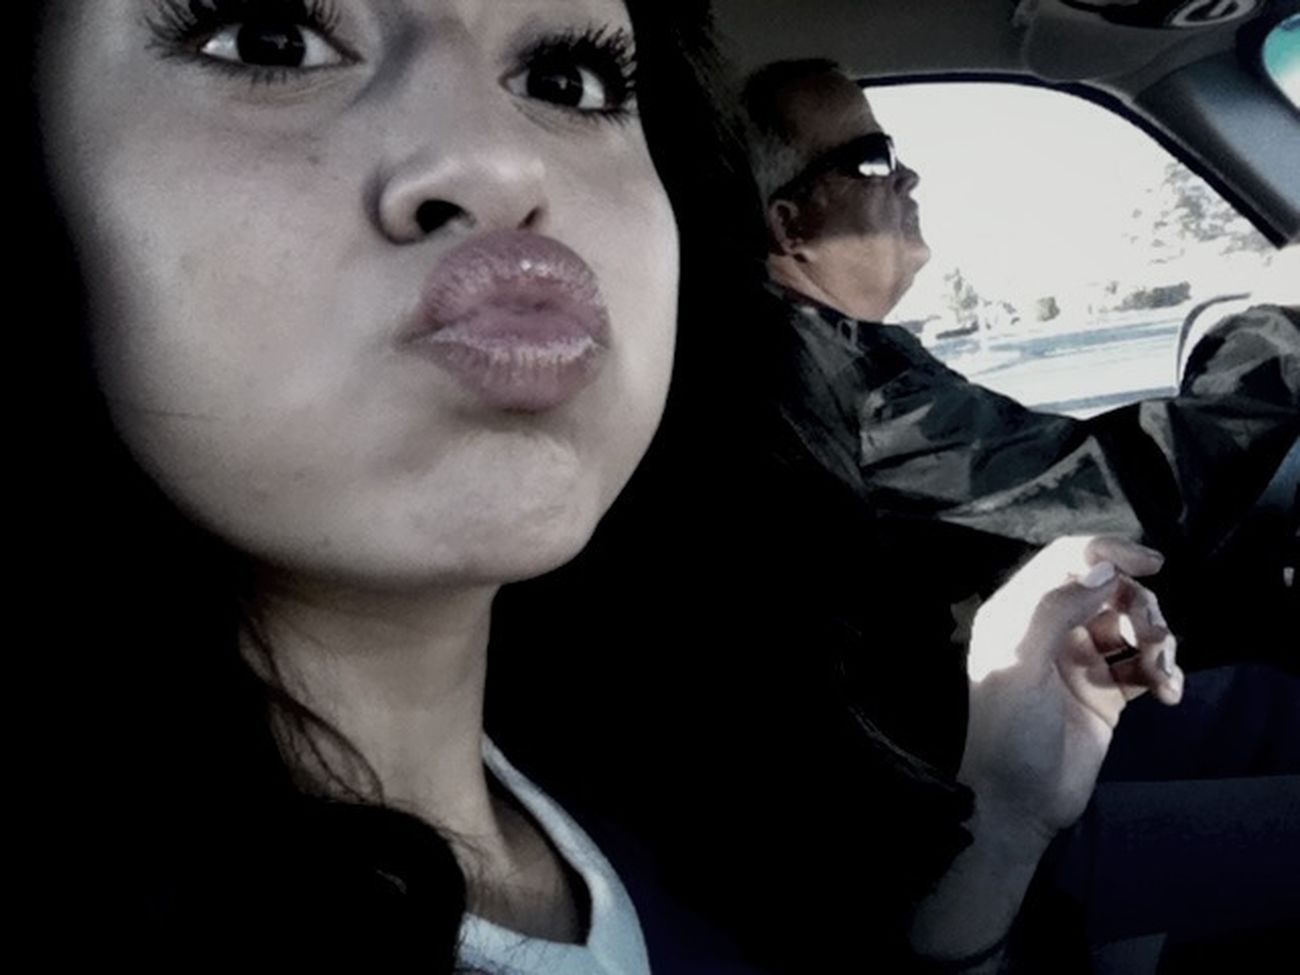 Ew but today in the car. Happy valentines day(':